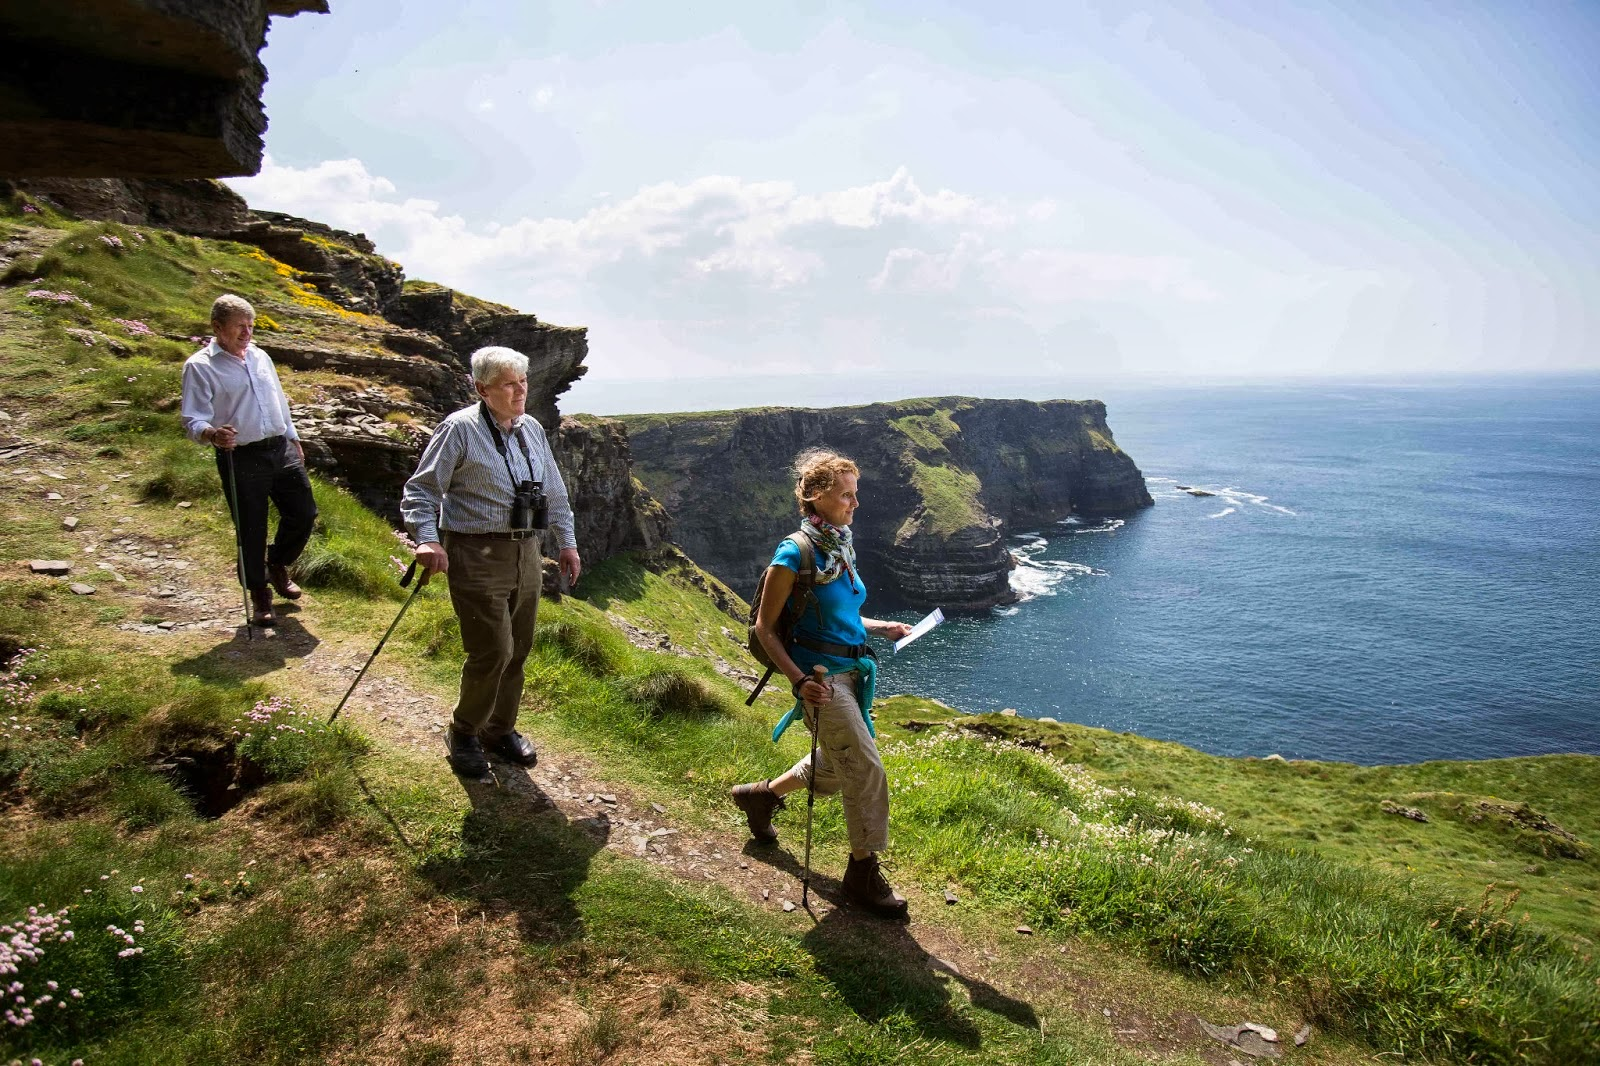 550K euro facilities upgrade plan for Cliffs of Moher